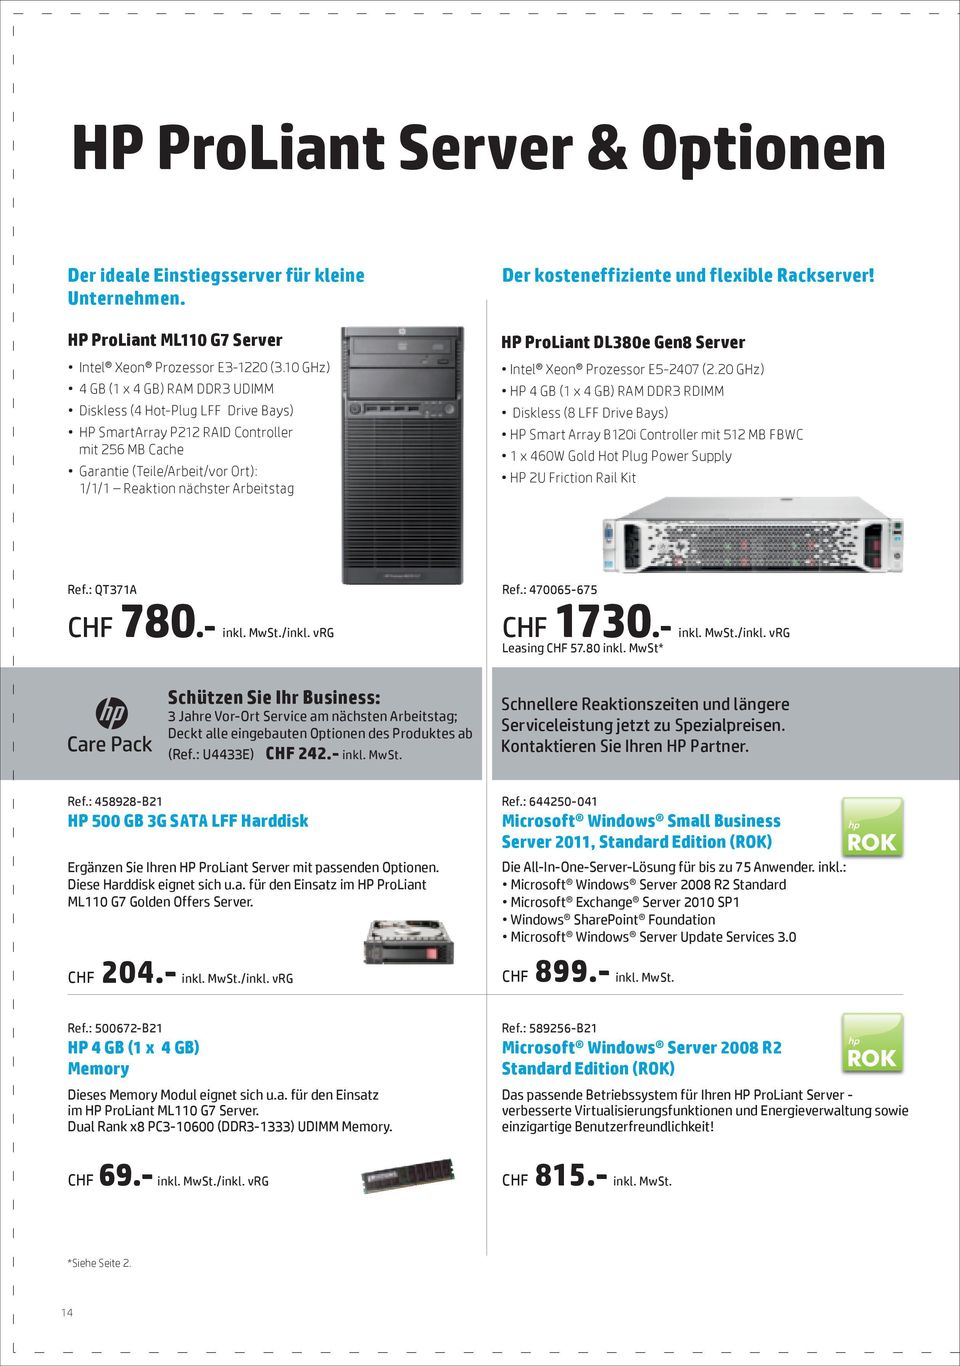 kosteneffiziente und flexible Rackserver! HP ProLiant DL380e Gen8 Server Intel Xeon Prozessor E5-2407 (2.